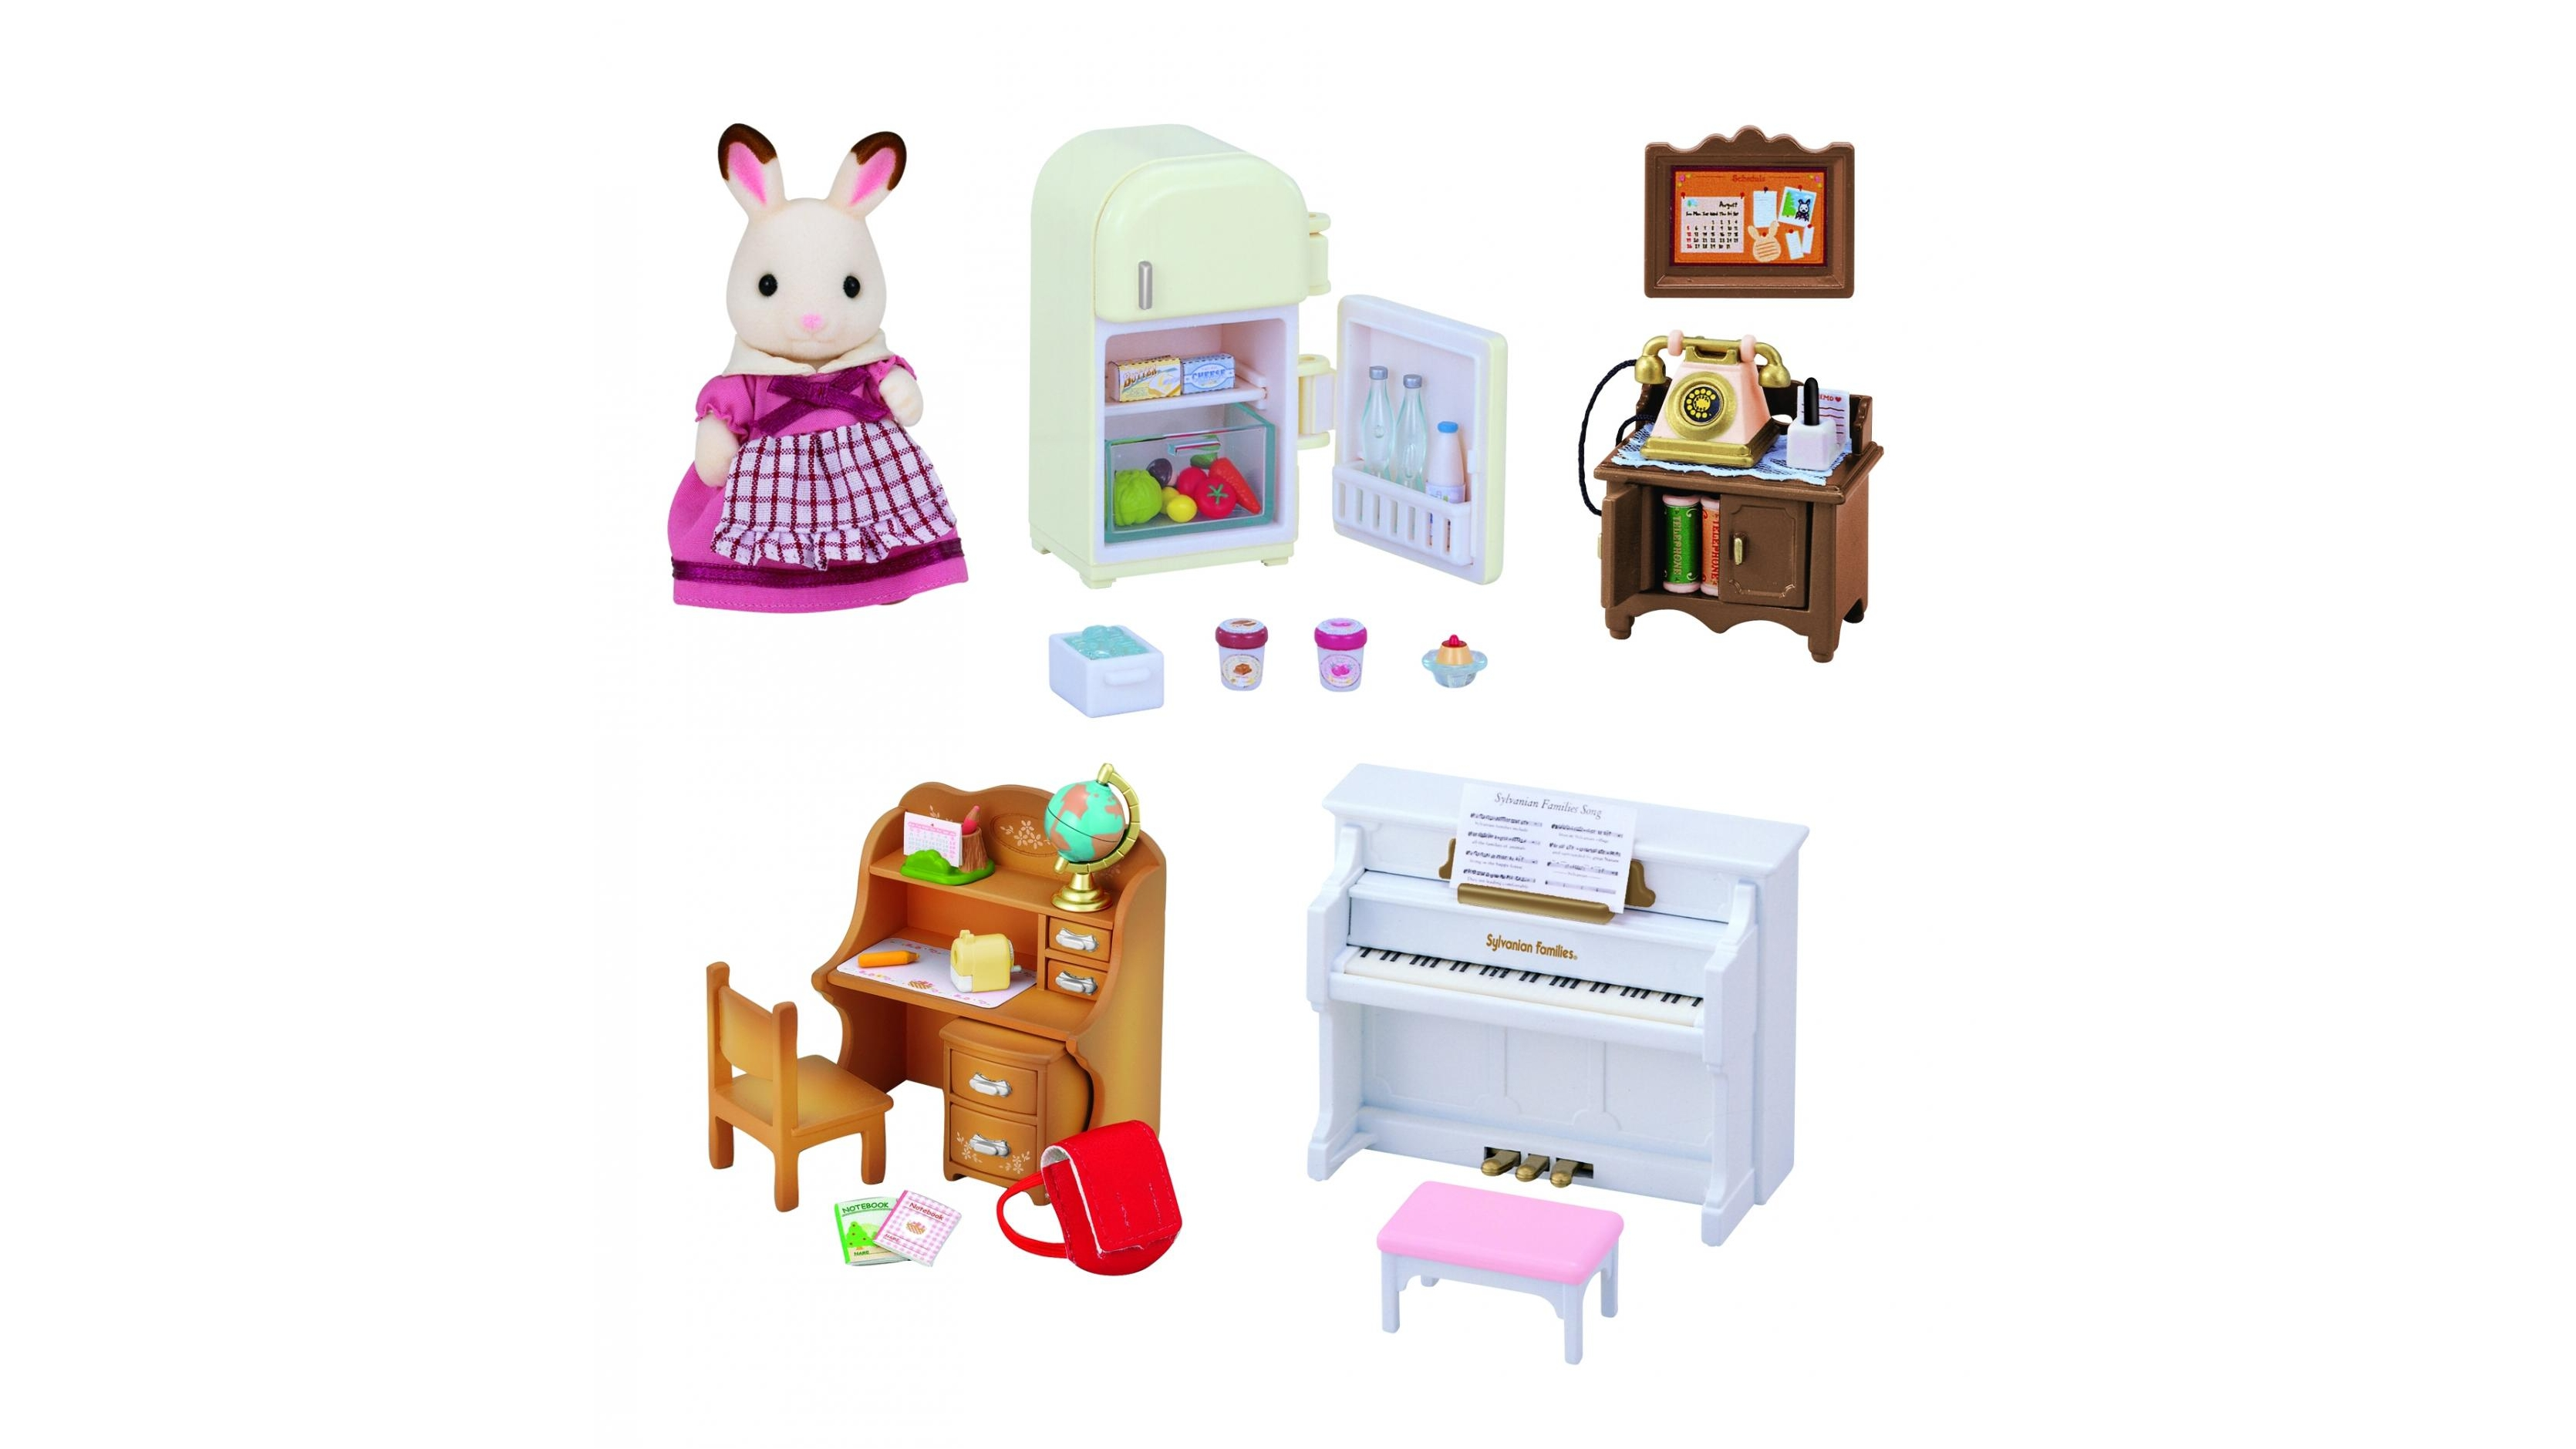 Sylvanian Families Furniture oven rack microwave